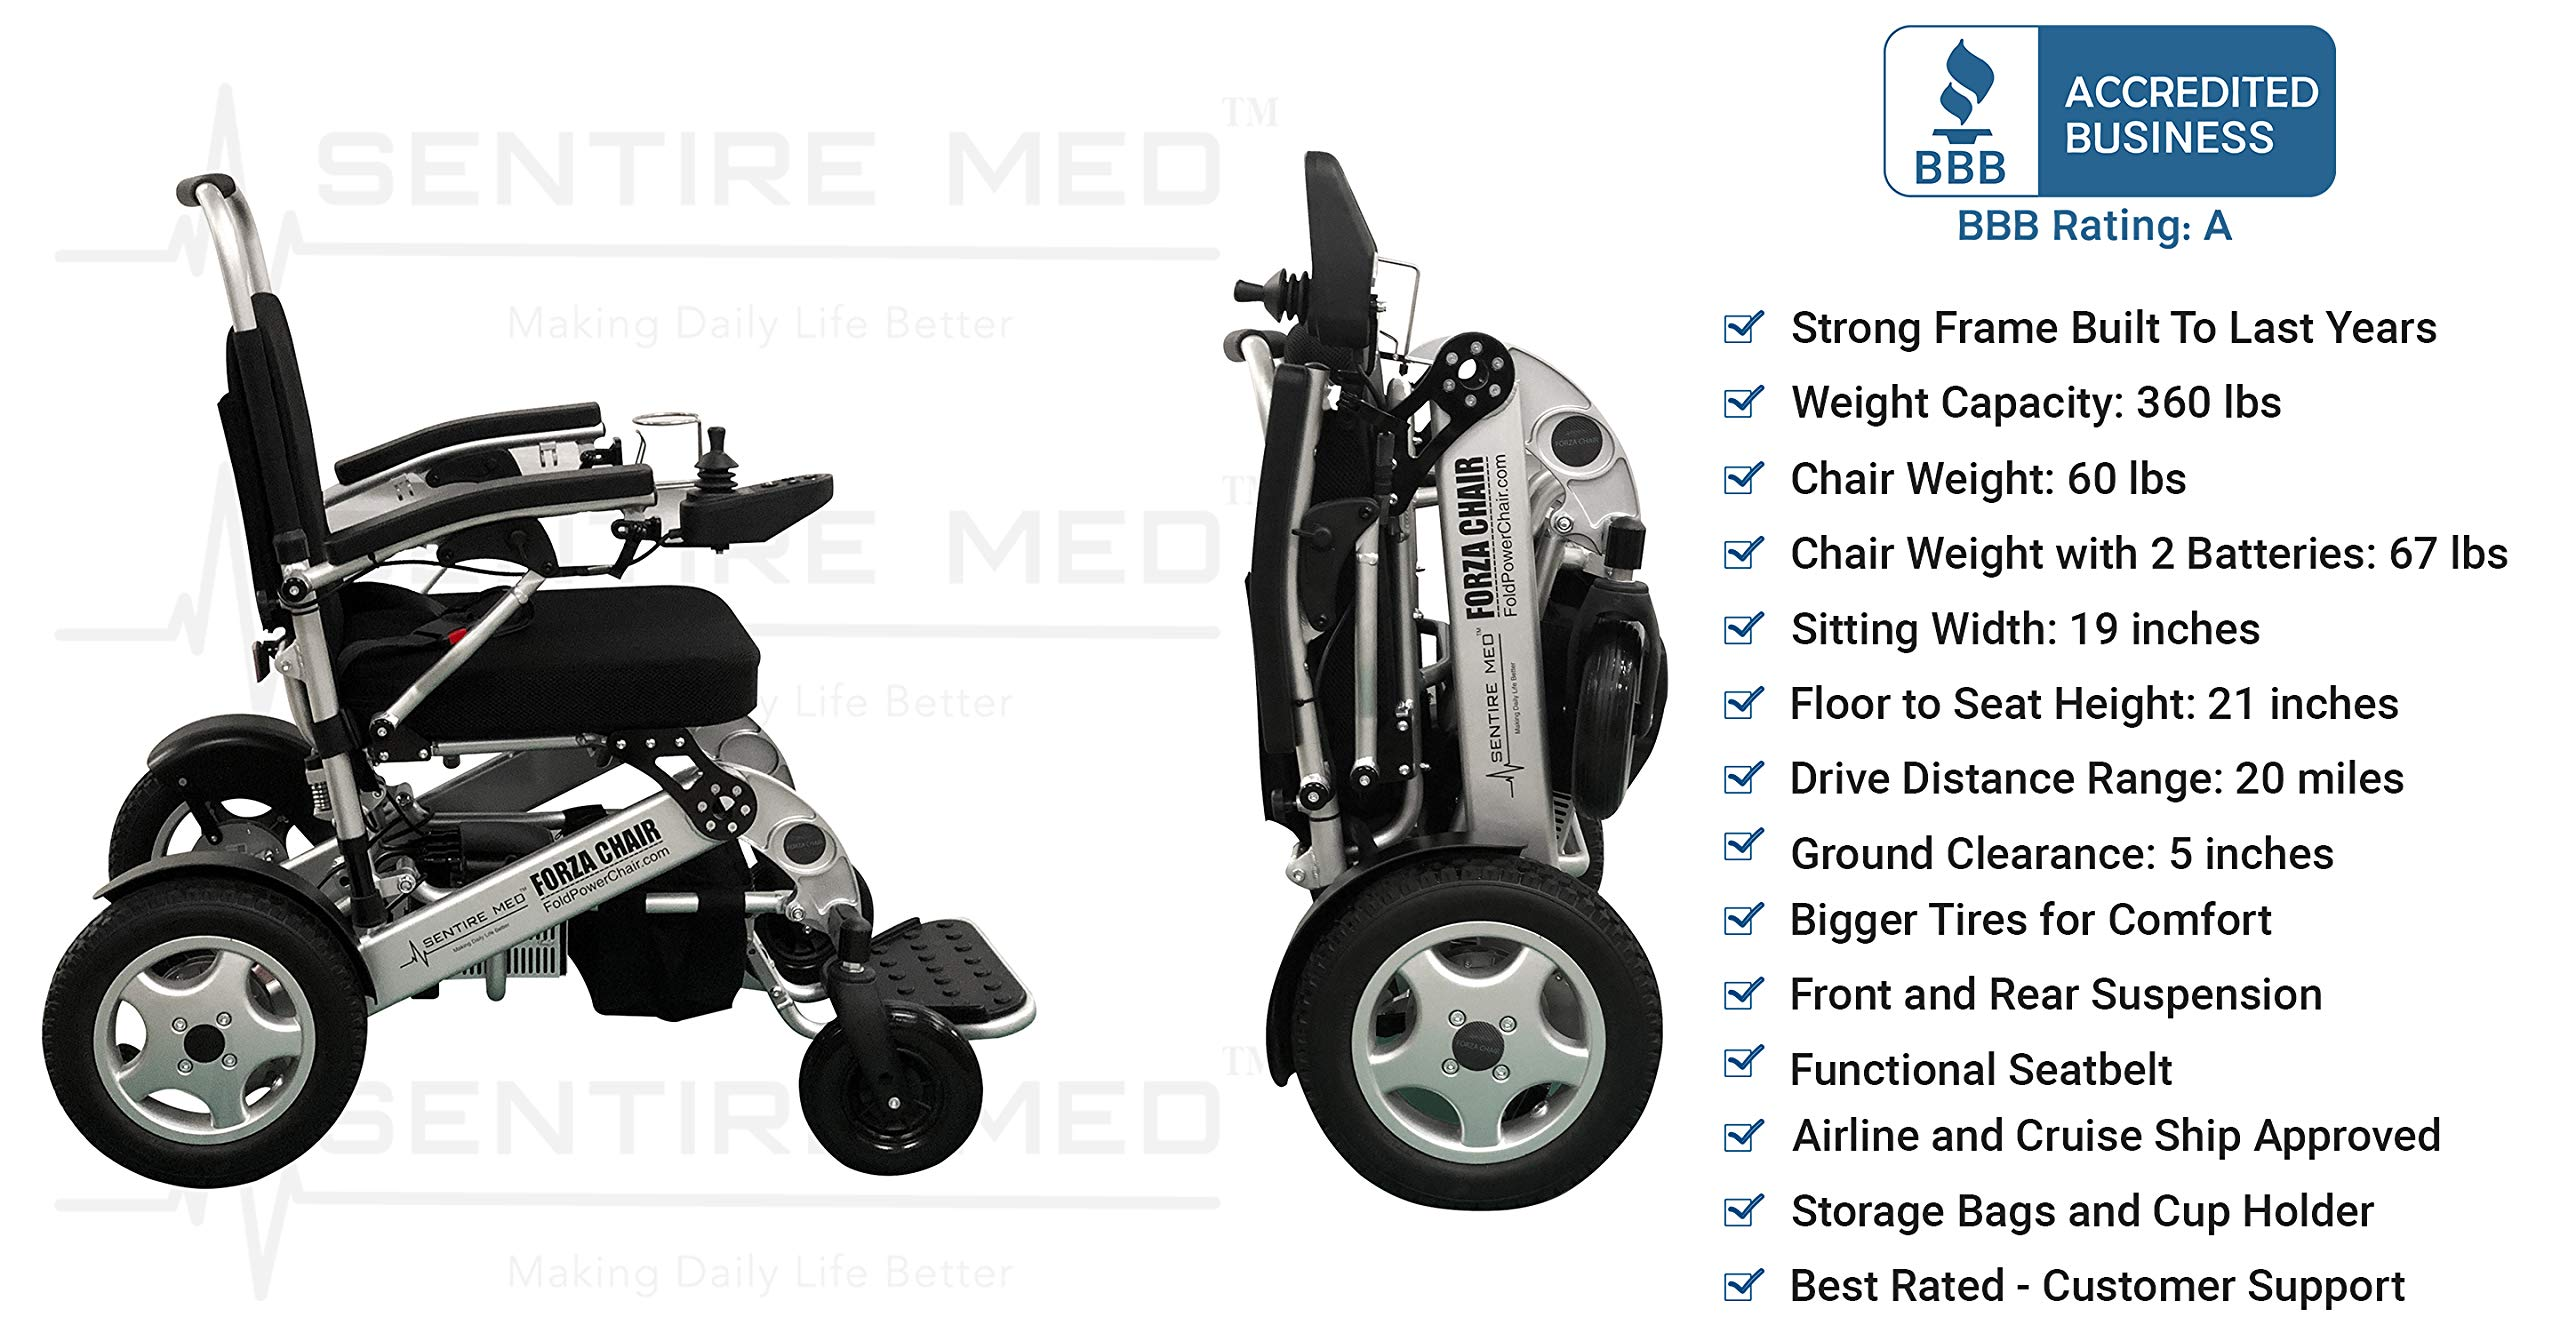 Sentire Med Forza FCX Deluxe Fold Foldable Power Compact Mobility Aid Wheel Chair, Lightweight Folding Carry Electric Wheelchair, Motorized Wheelchair, Powerful Dual Motor Wheelchair by Sentire Med